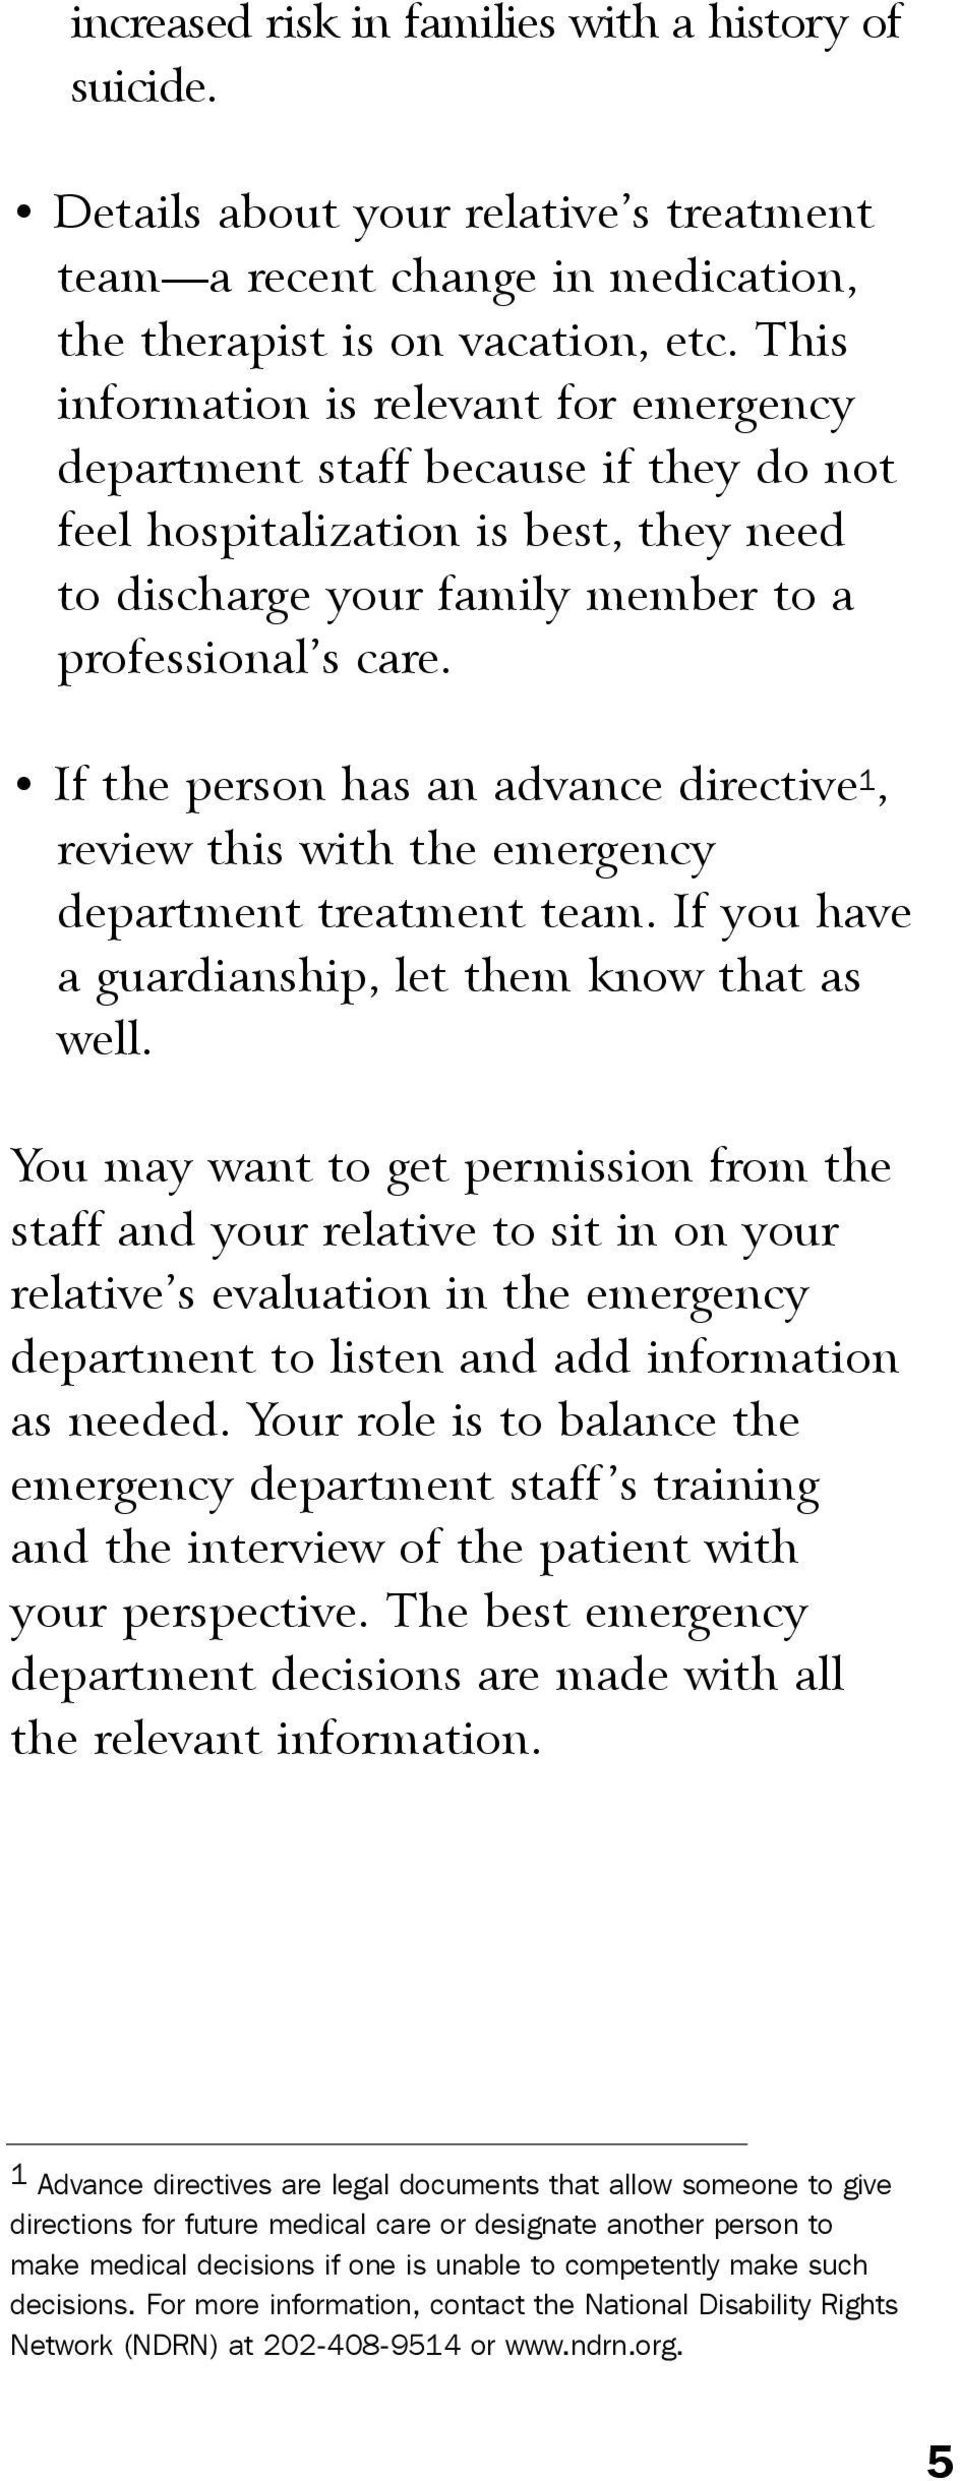 If the person has an advance directive 1, review this with the emergency department treatment team. If you have a guardianship, let them know that as well.